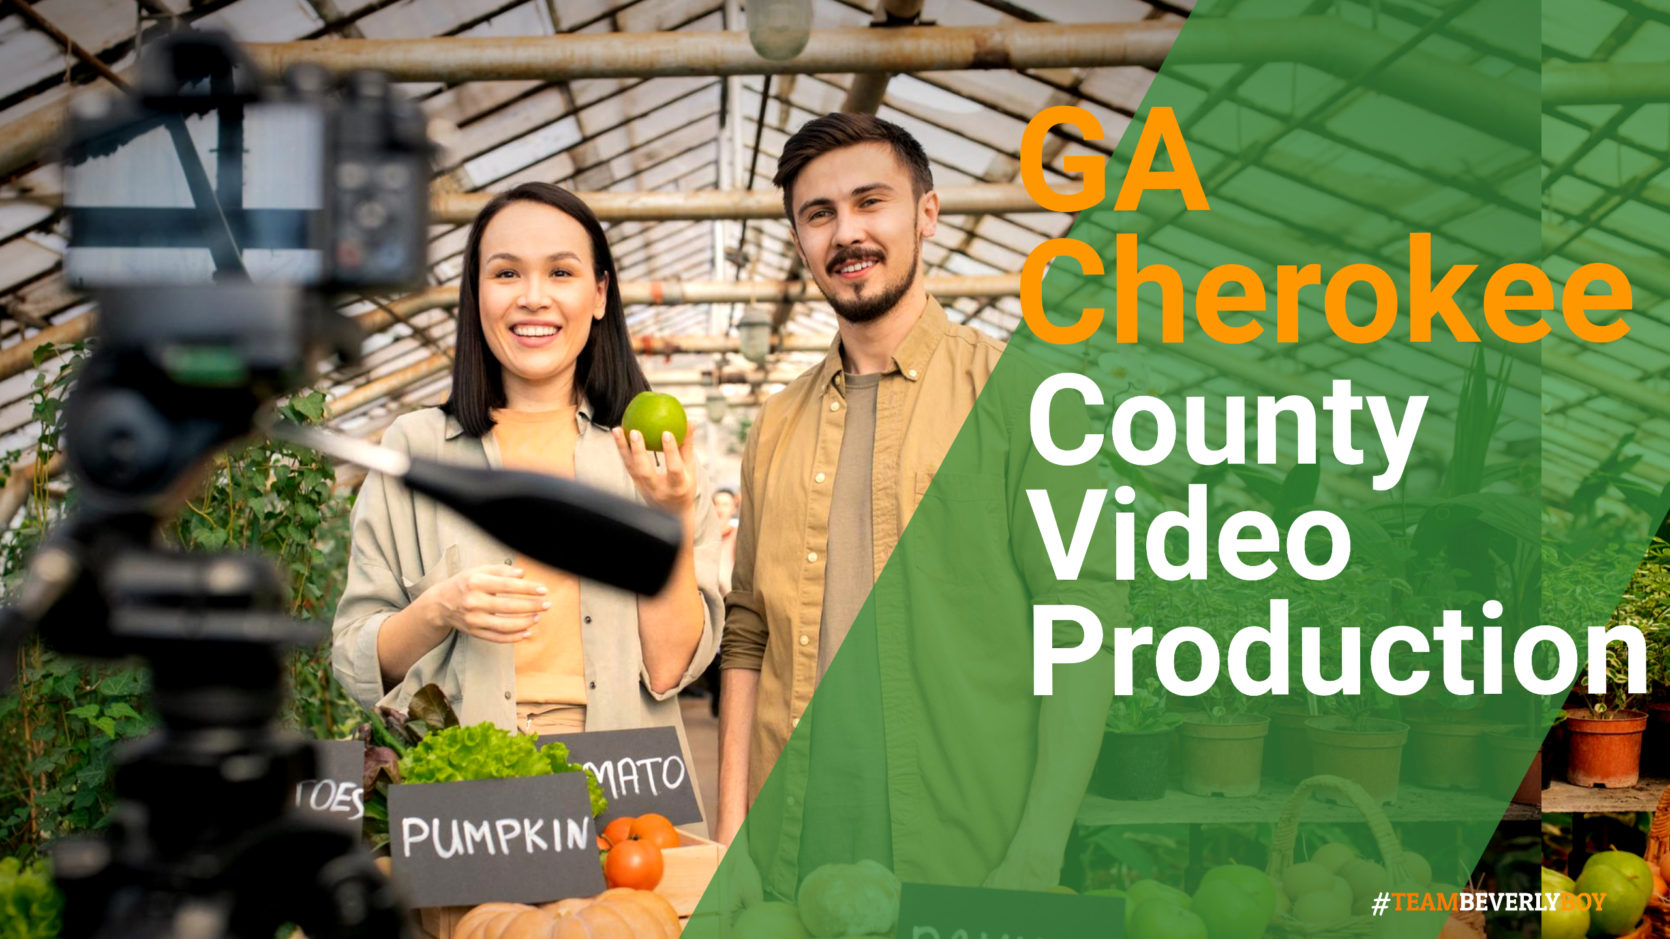 Cherokee County GA video production